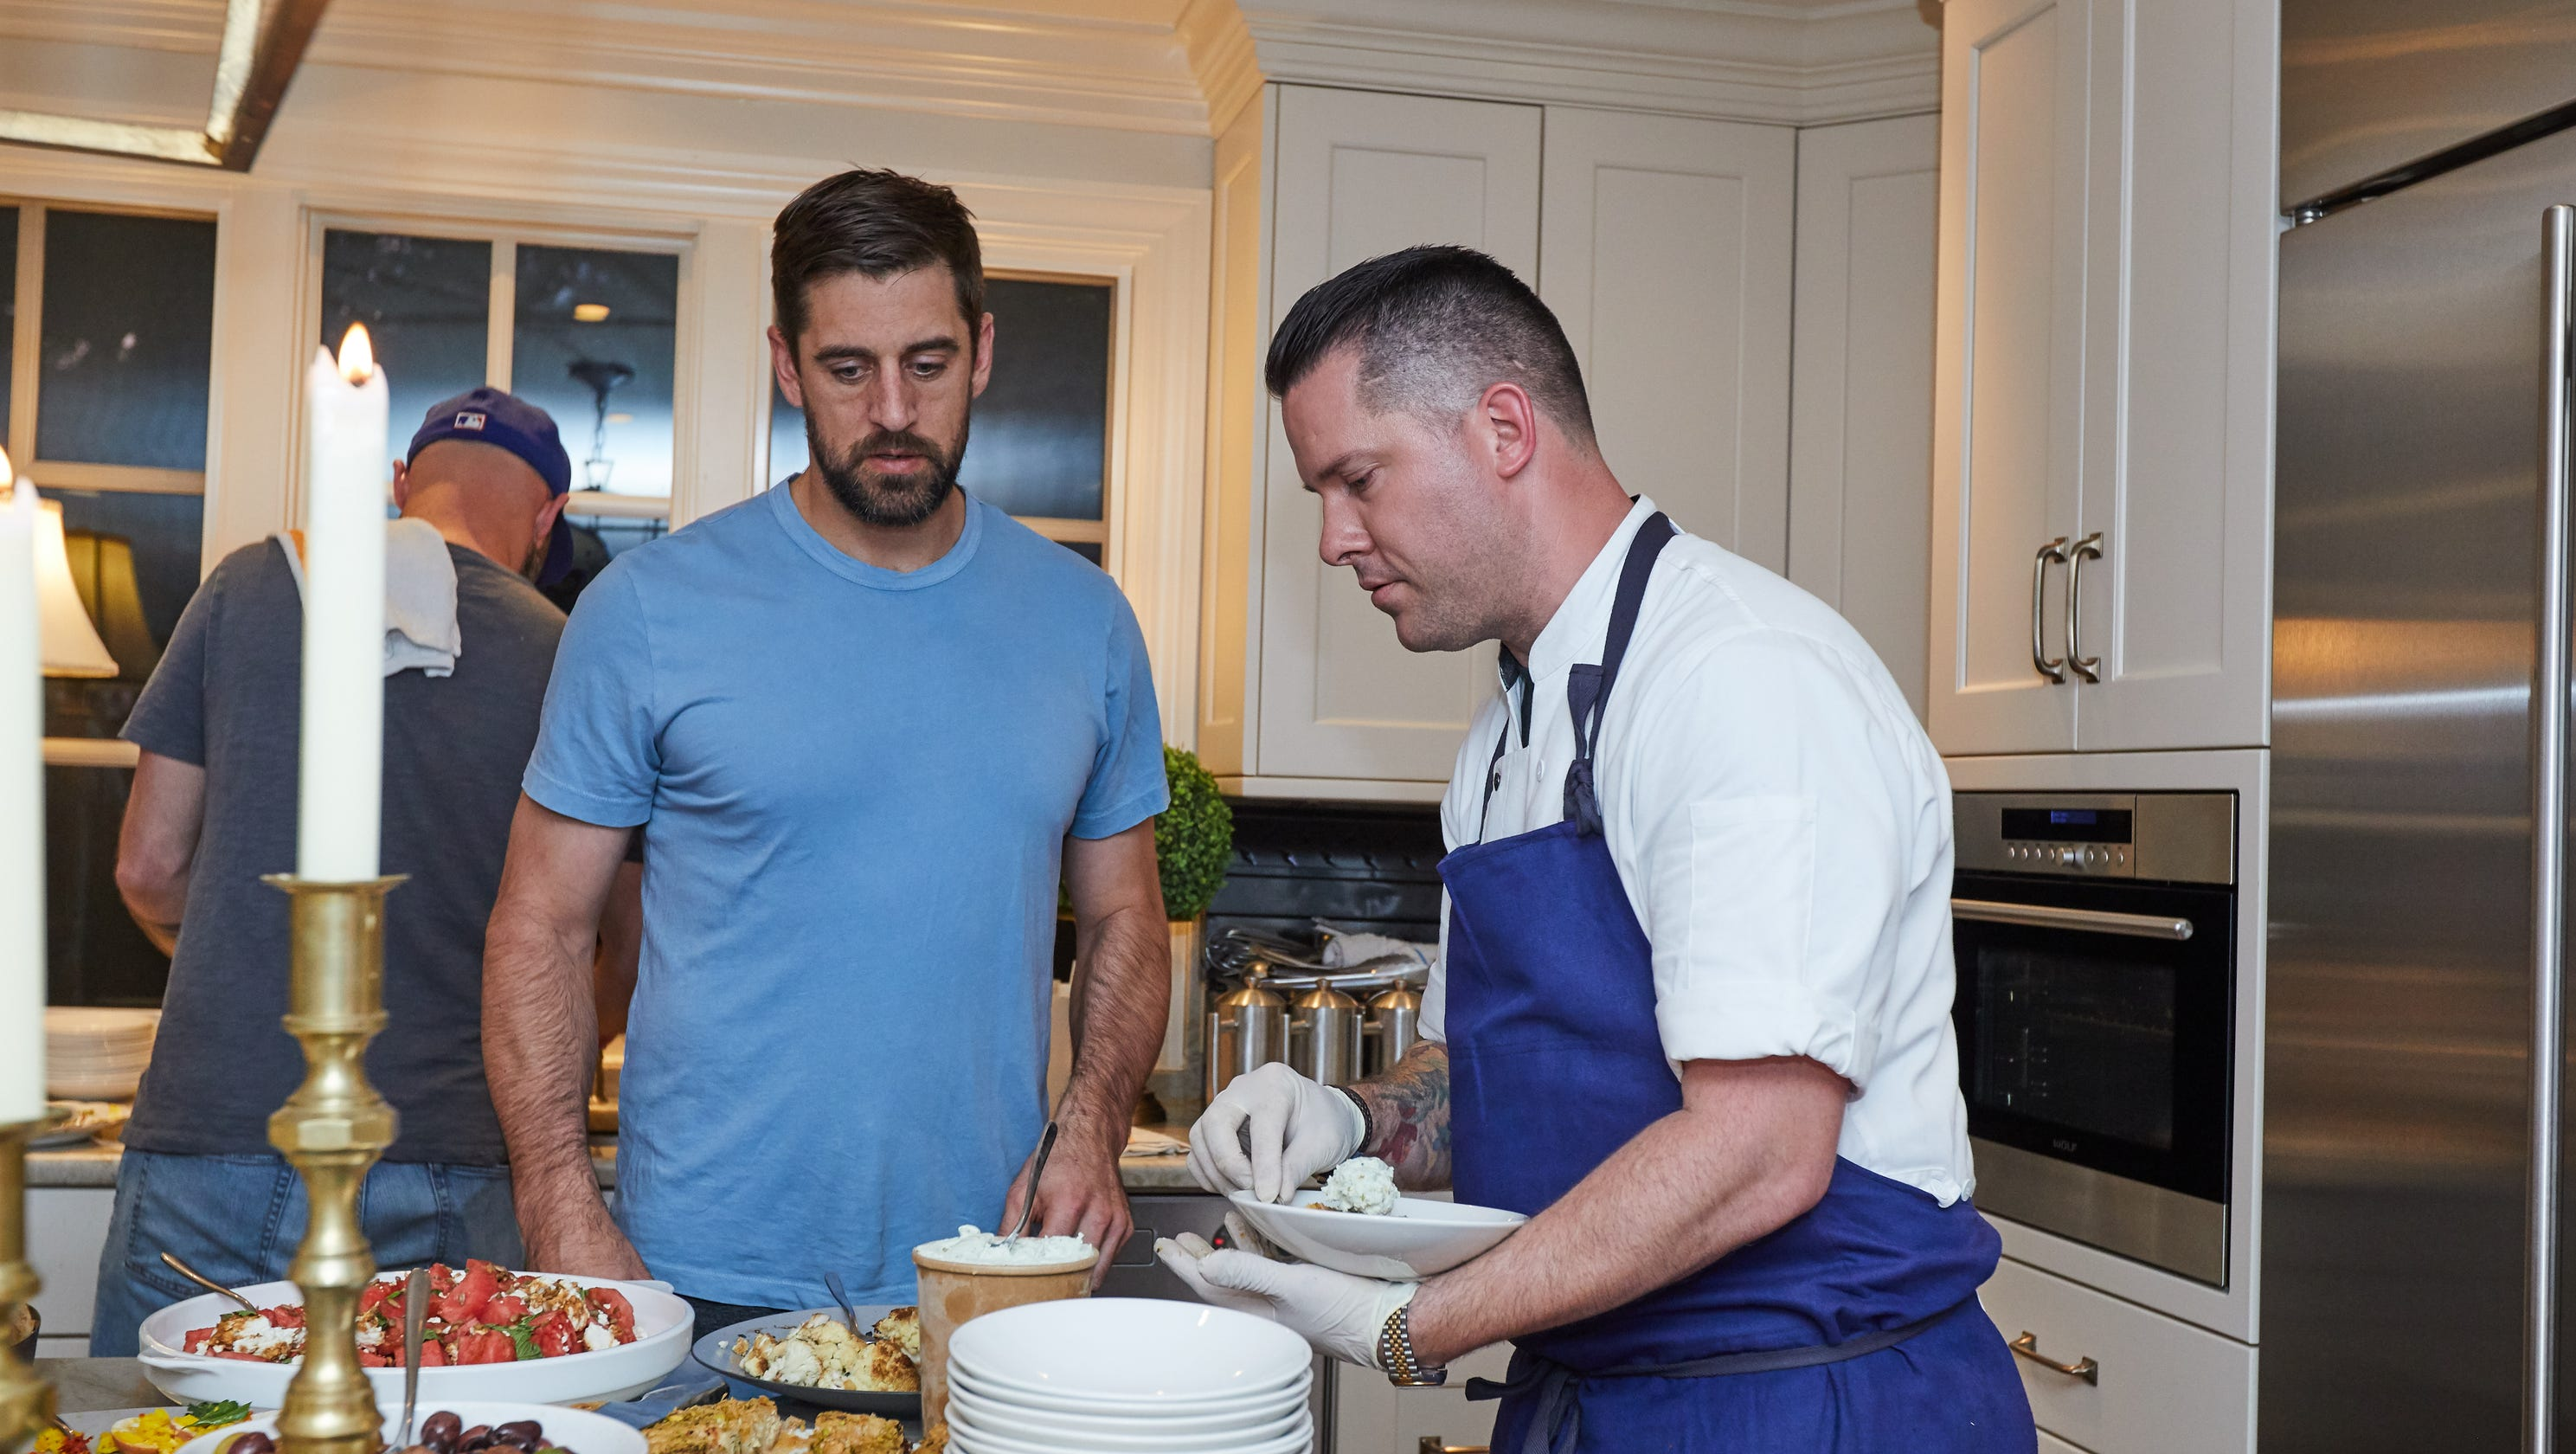 Kentucky Derby 2019: Louisville Chef Cooks For NFL Players